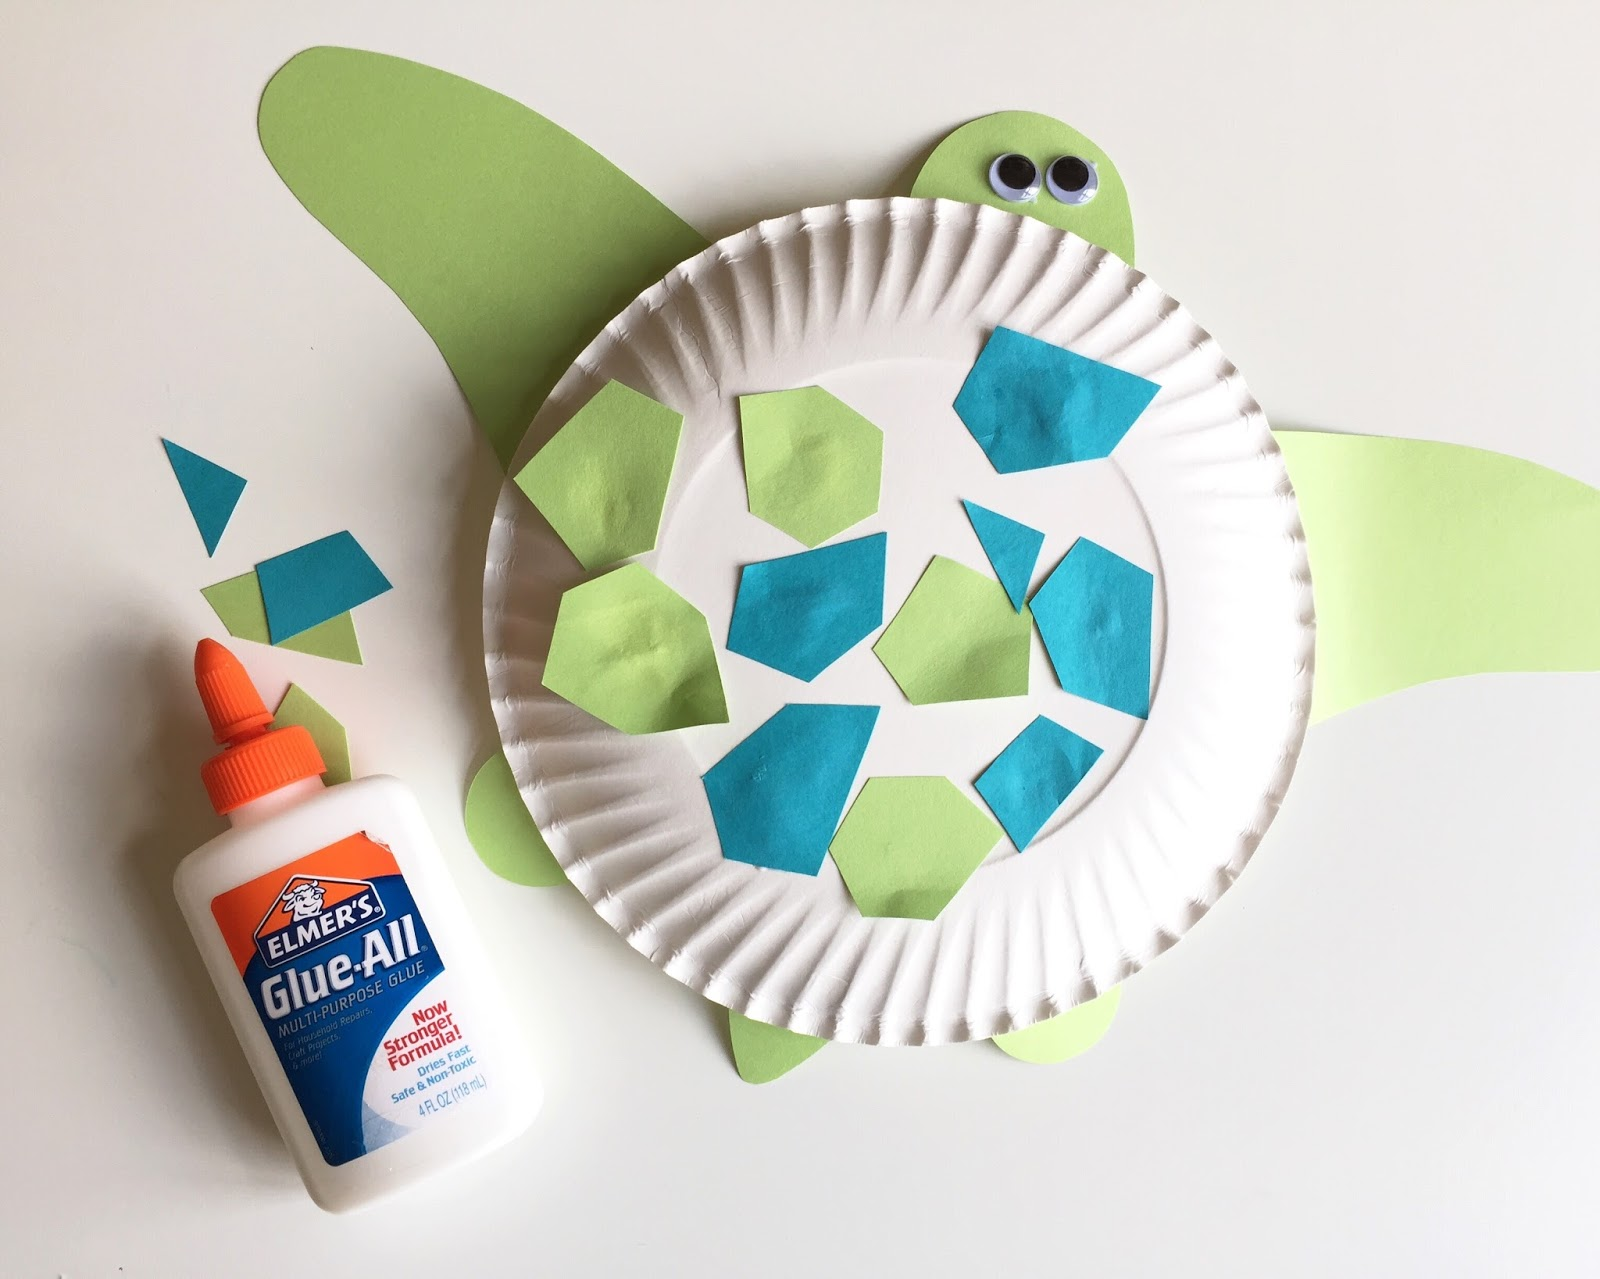 ... her apply them to the underside of a paper plate. Googly eyes completed the look. Last year we made a sponge-painted jelly fish during this theme week. & keep it simple schlossers: Toddler Theme: Under the Sea